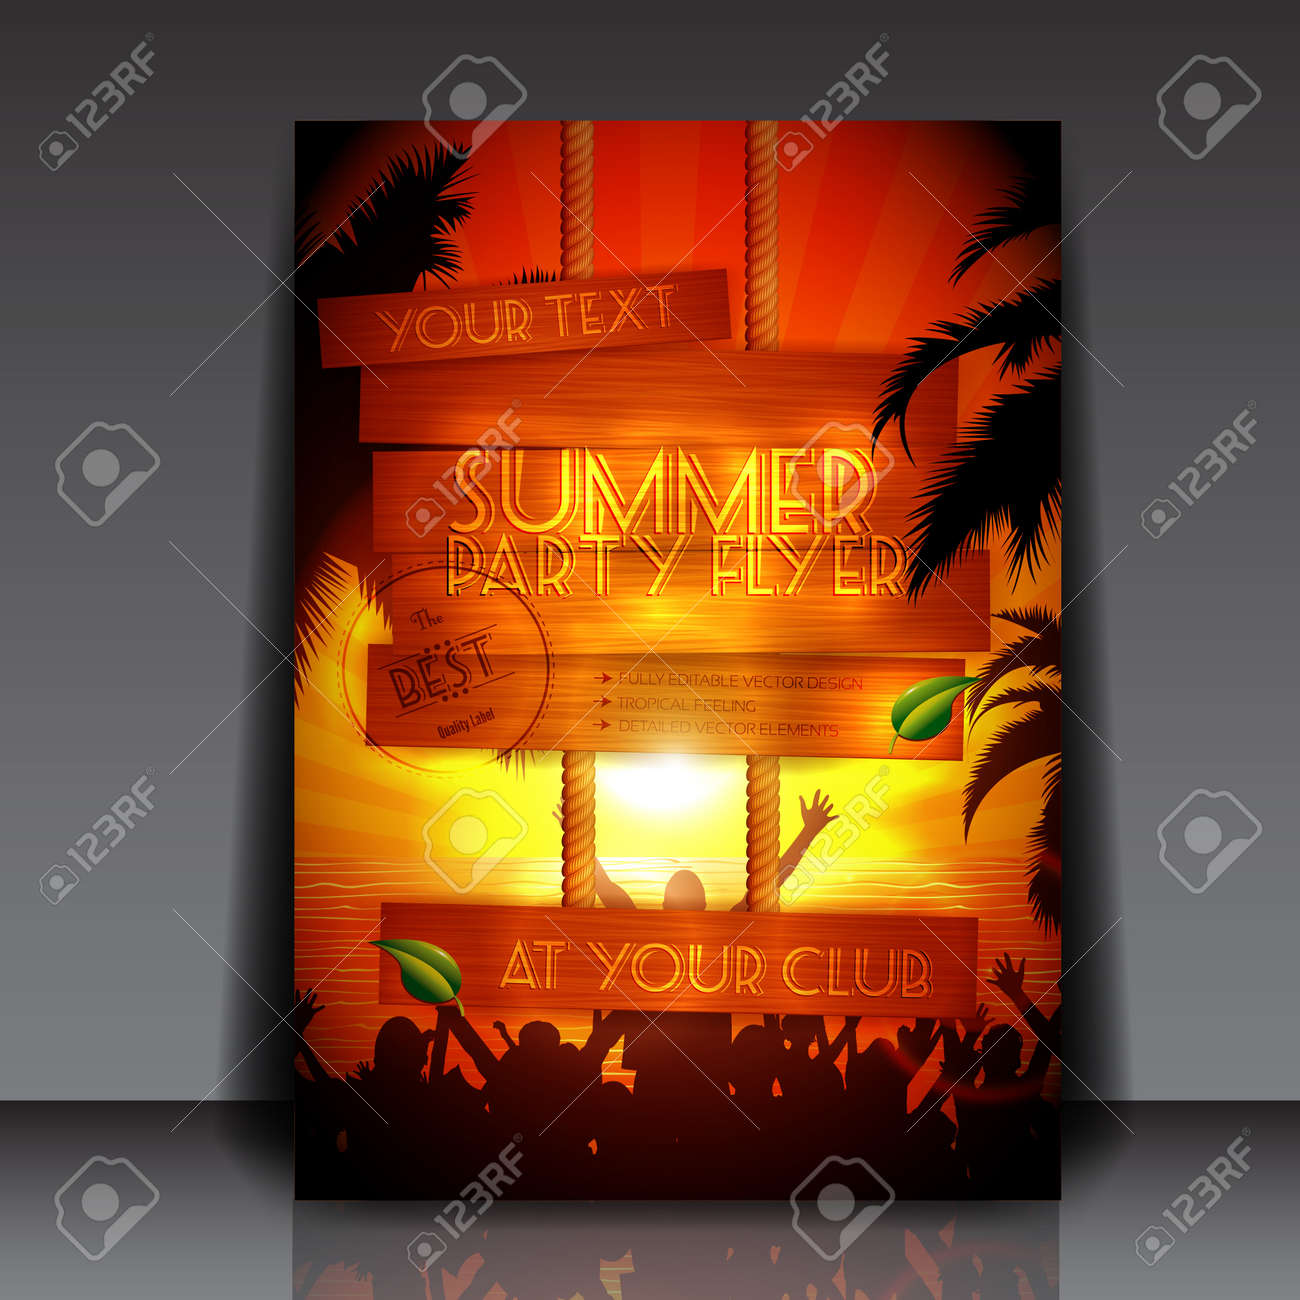 Party people on the beach in summer - Fully Editable Party Flyer Stock Vector - 14426825